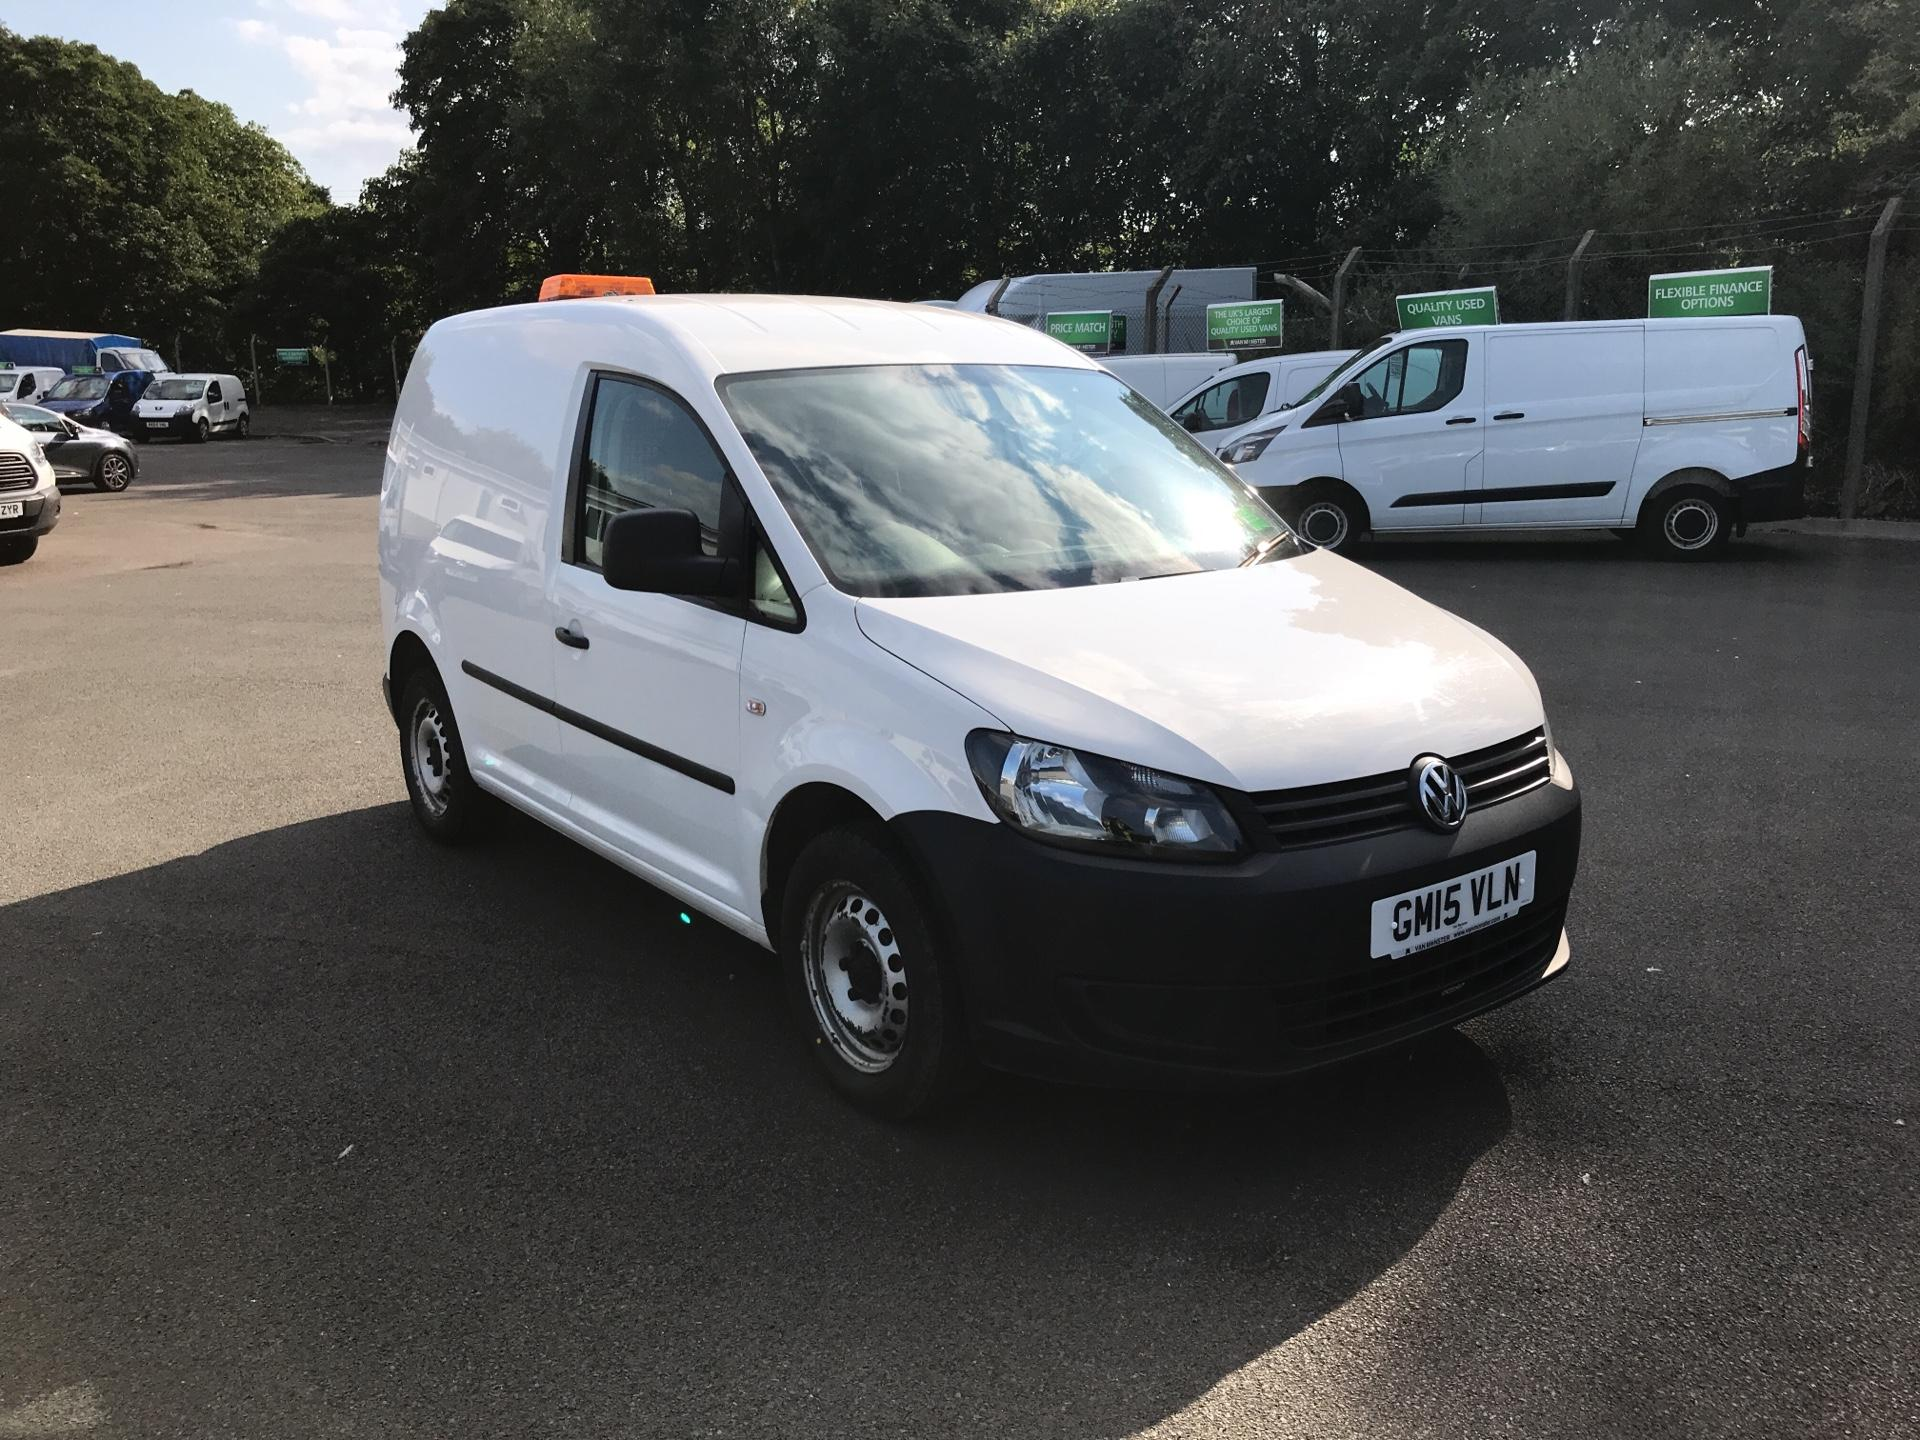 2015 Volkswagen Caddy  1.6 102PS STARTLINE EURO 5  *VALUE RANGE VEHICLE - CONDITION REFLECTED IN PRICE*  (GM15VLN)